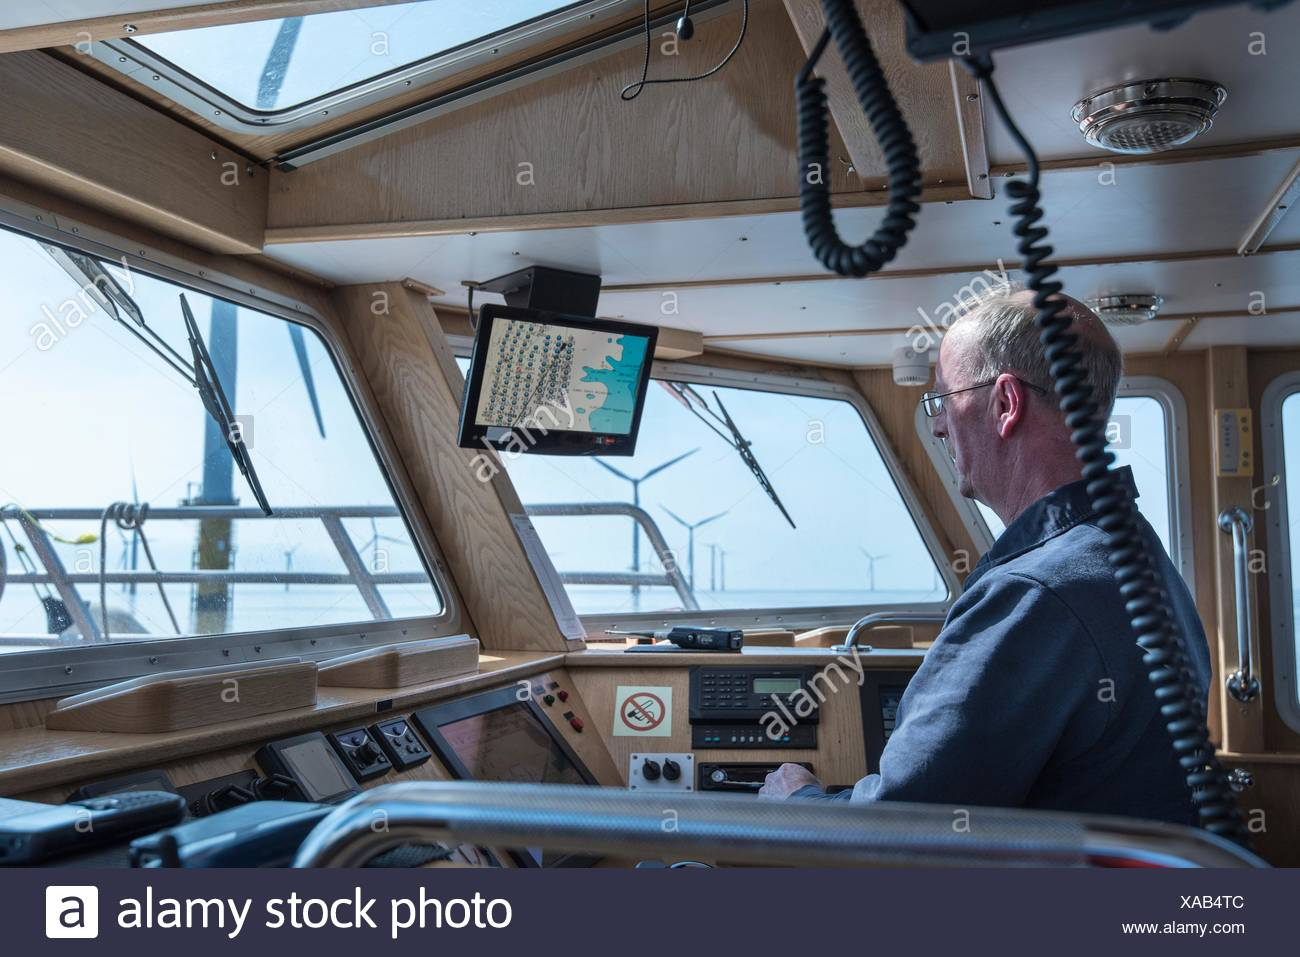 Captain steering service boat at offshore windfarm - Stock Image